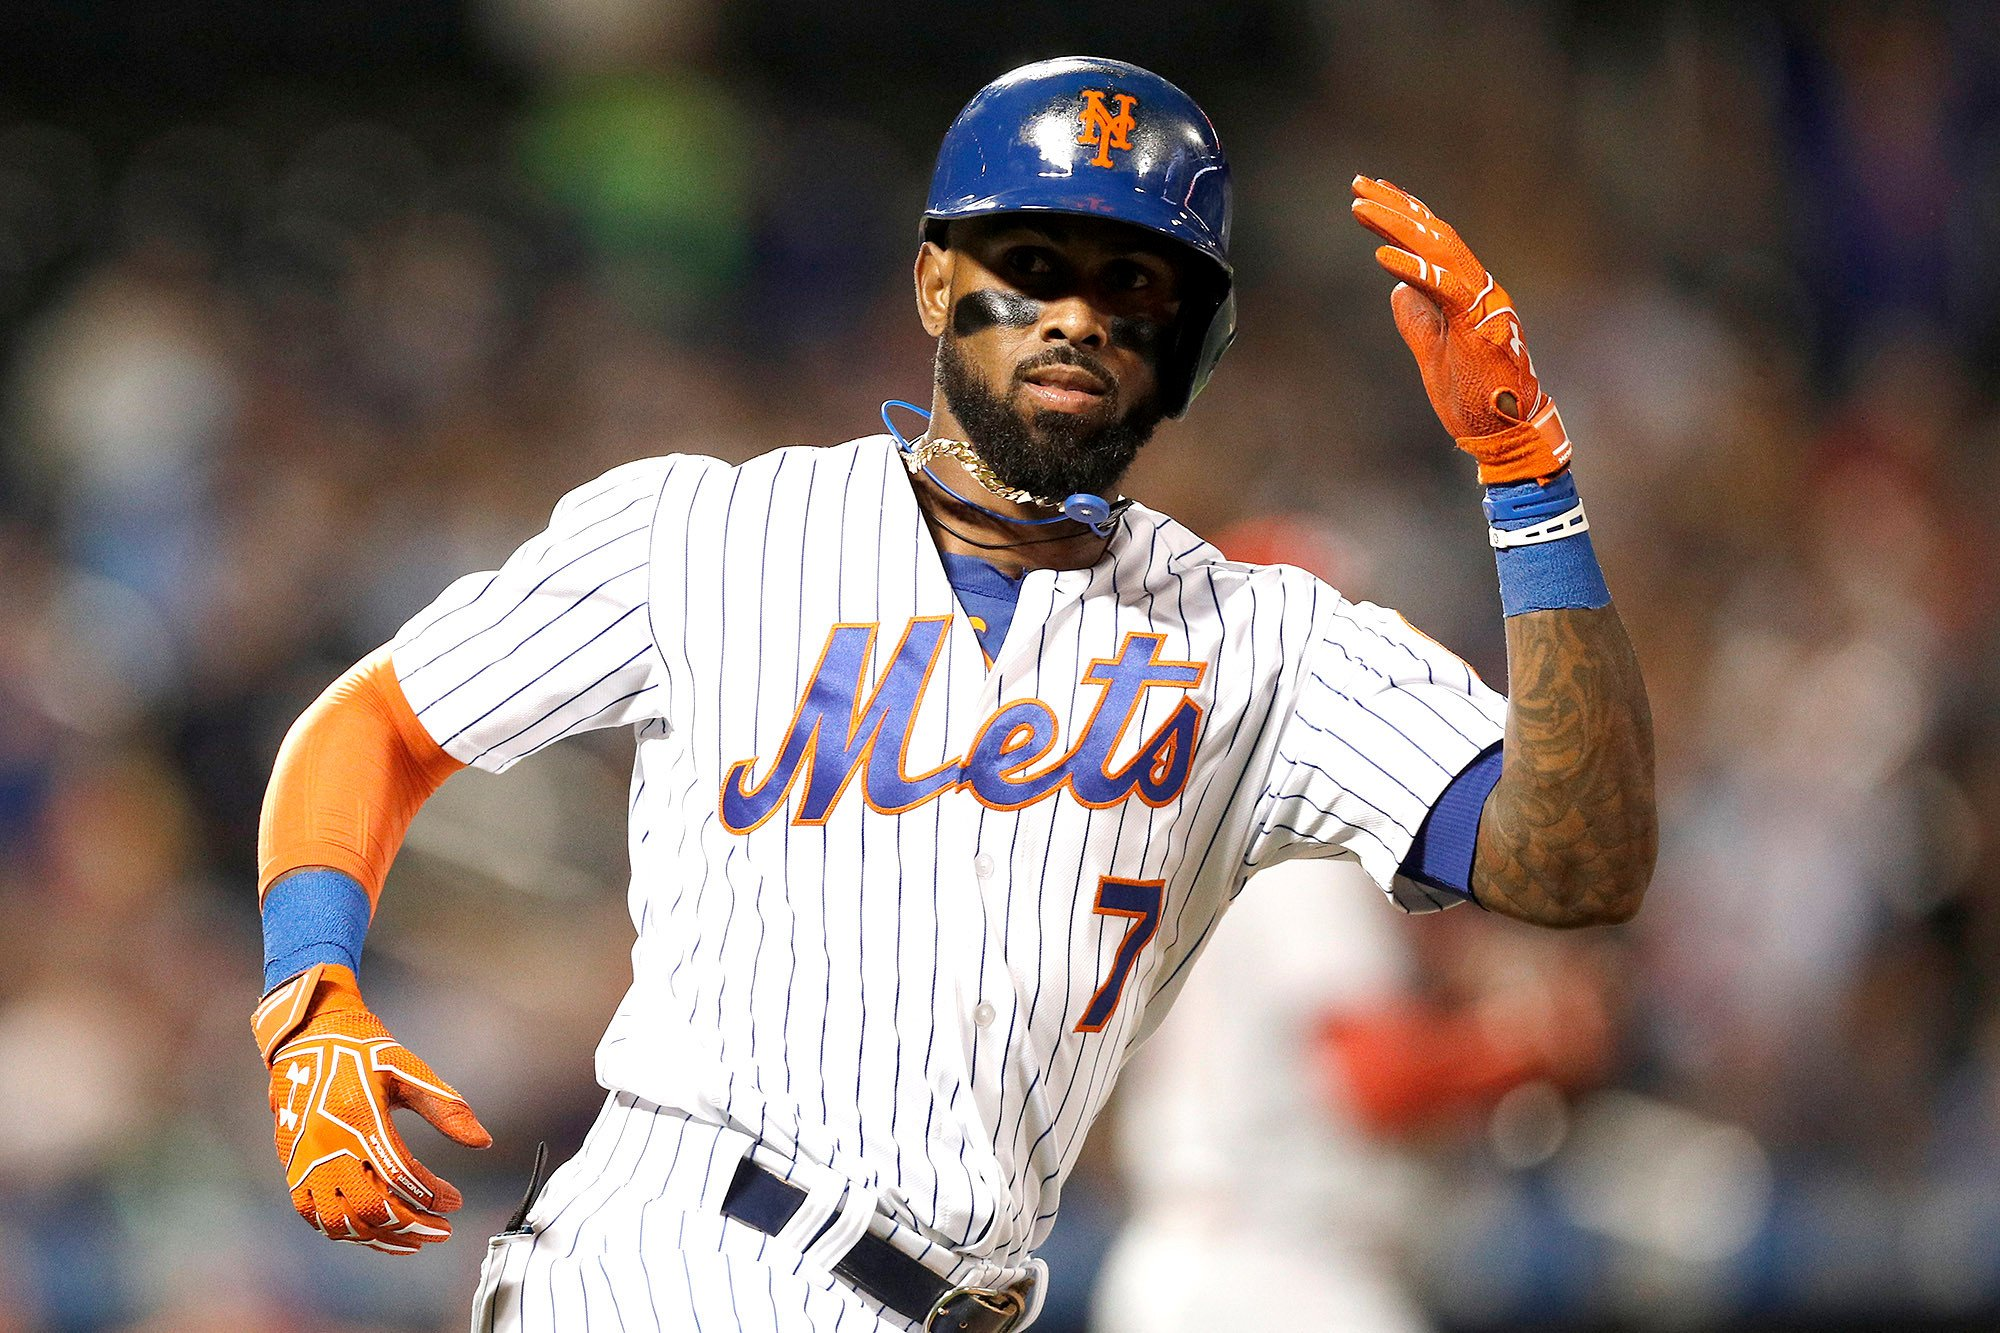 Mets bringing back Jose Reyes — with one catch